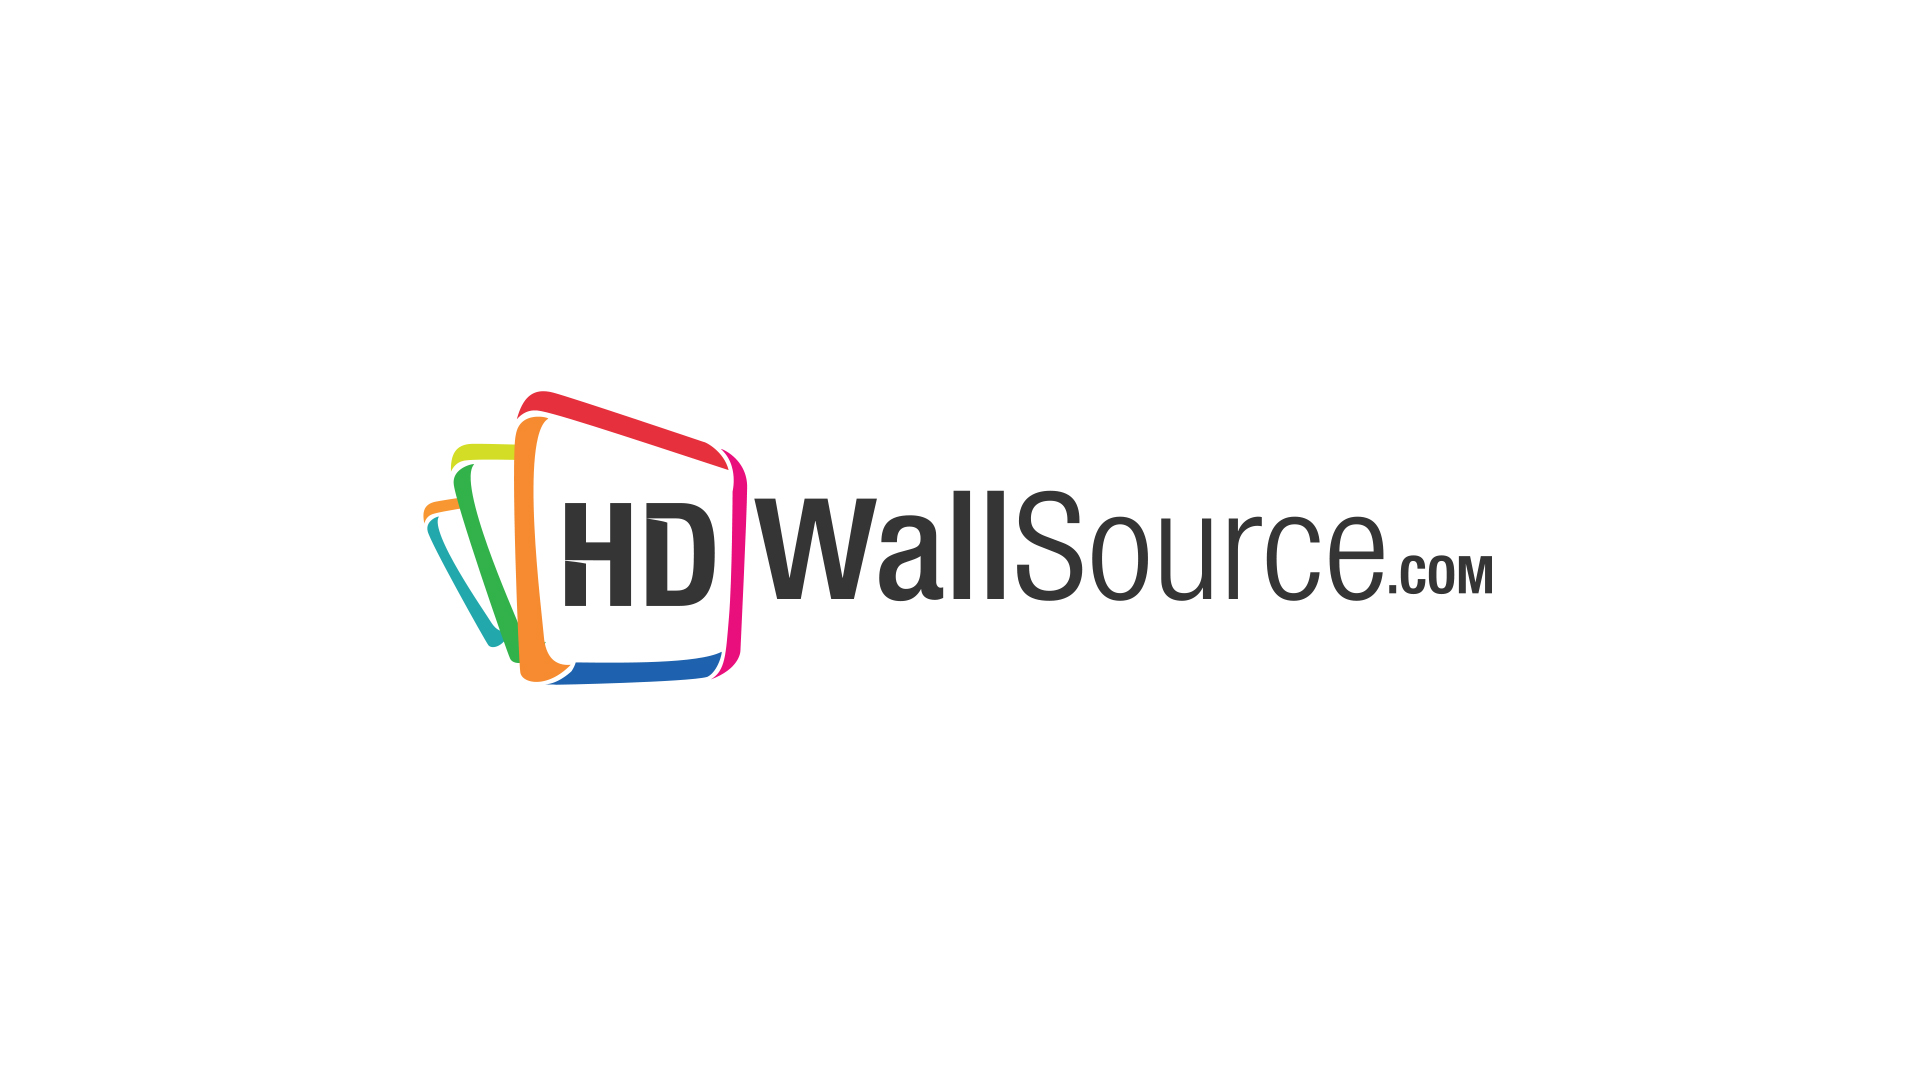 hdwallsource logo wallpaper background 64289